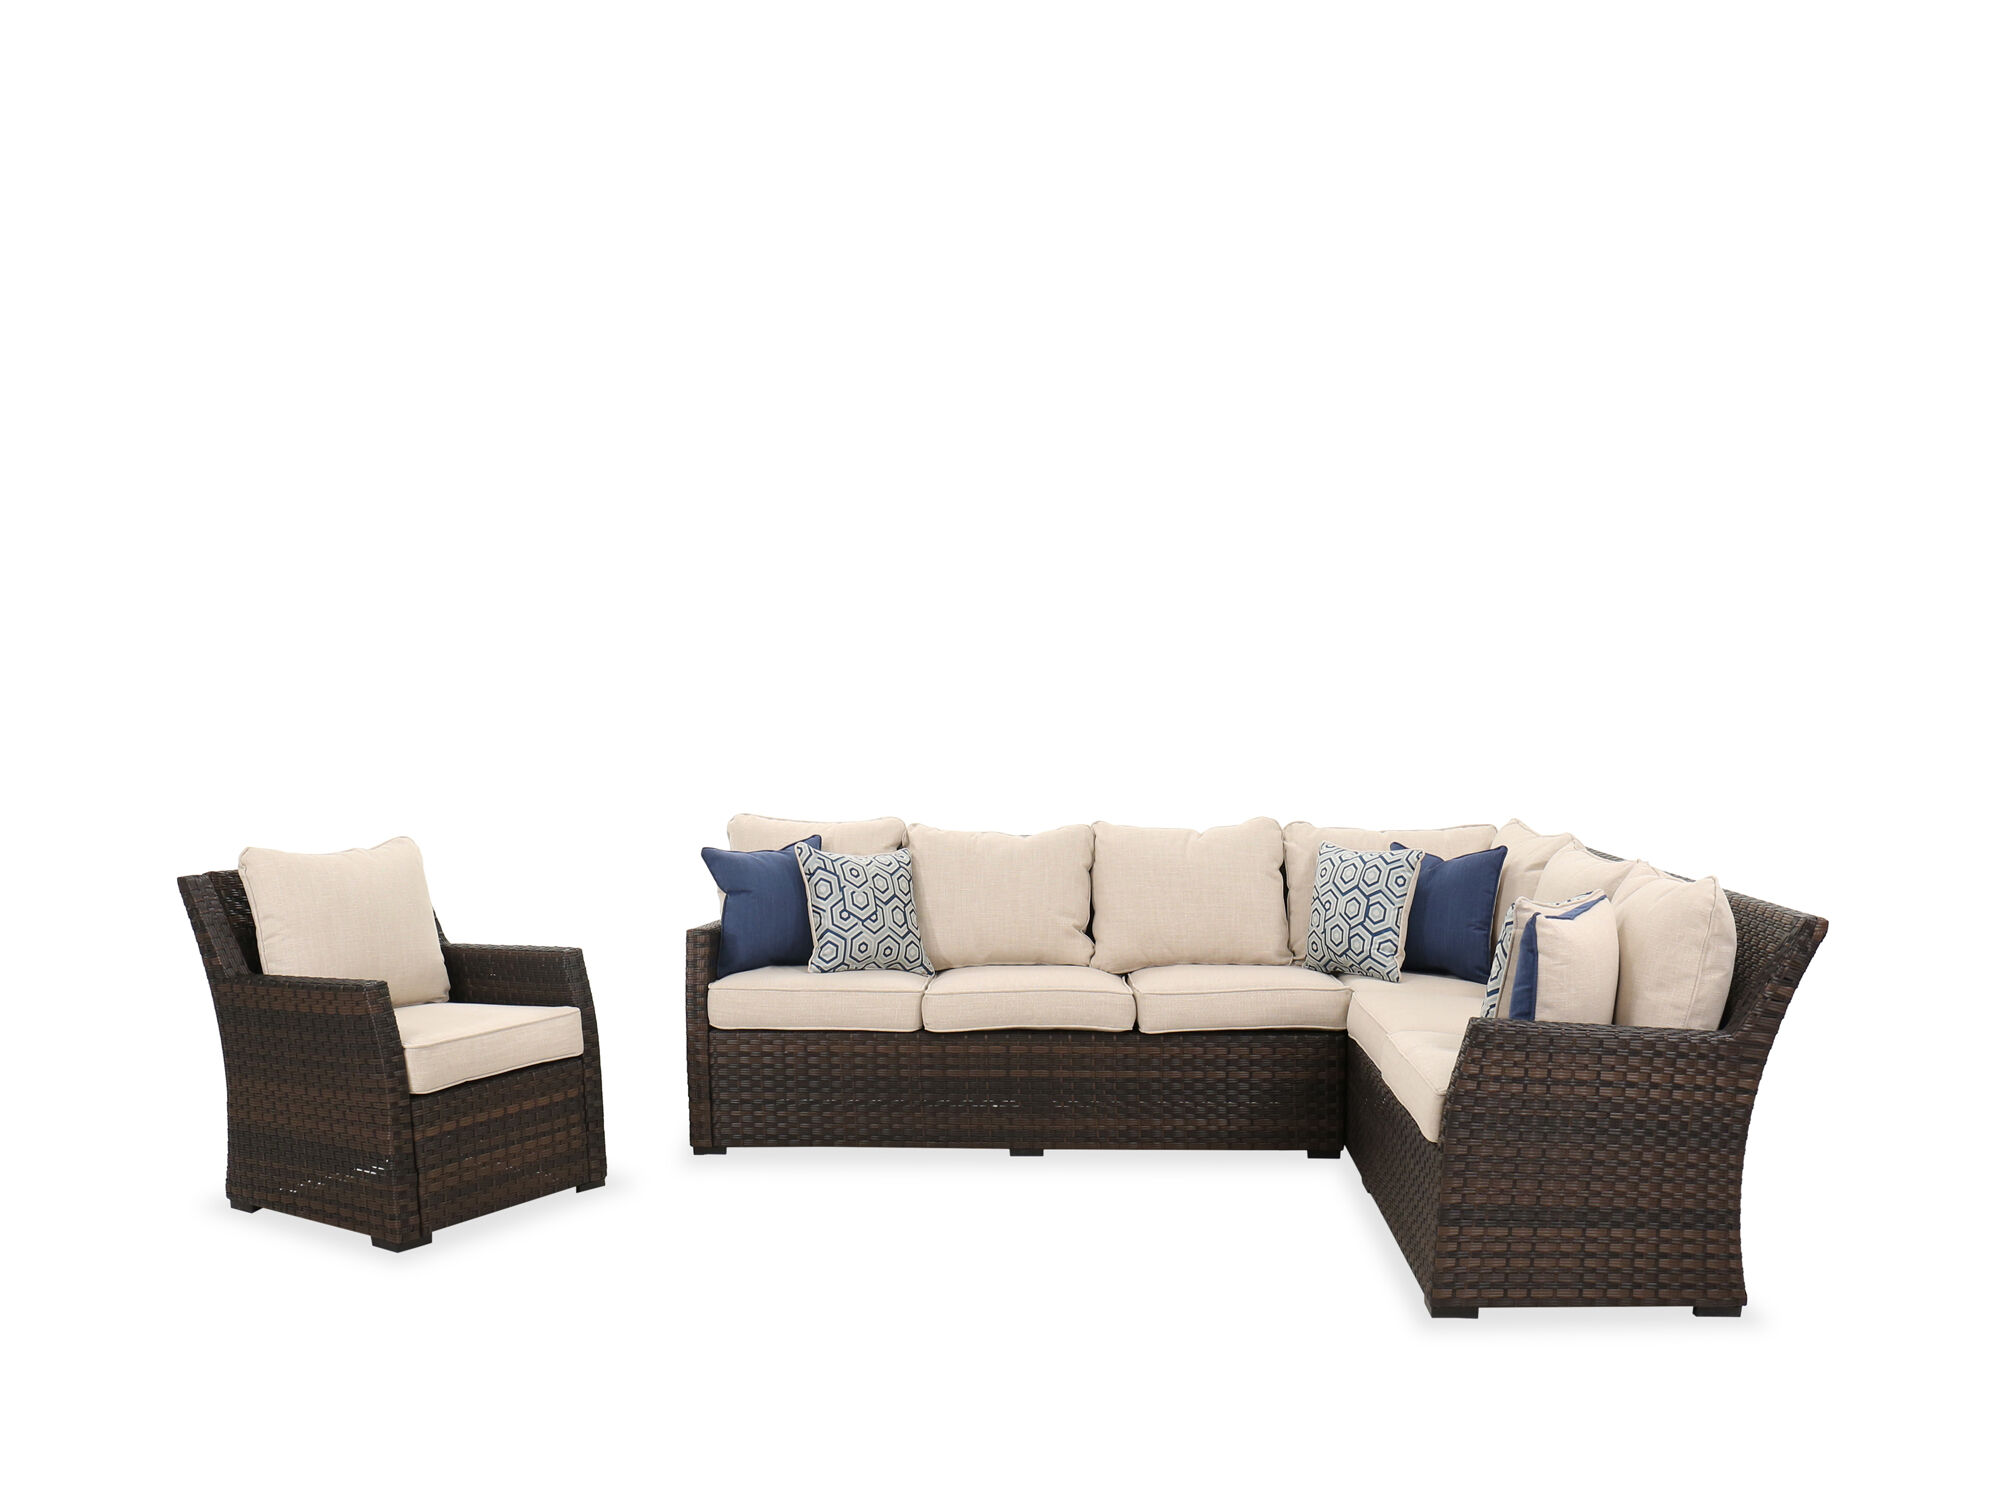 Three-Piece Contemporary Sofa Set in Brown | Mathis Brothers Furniture